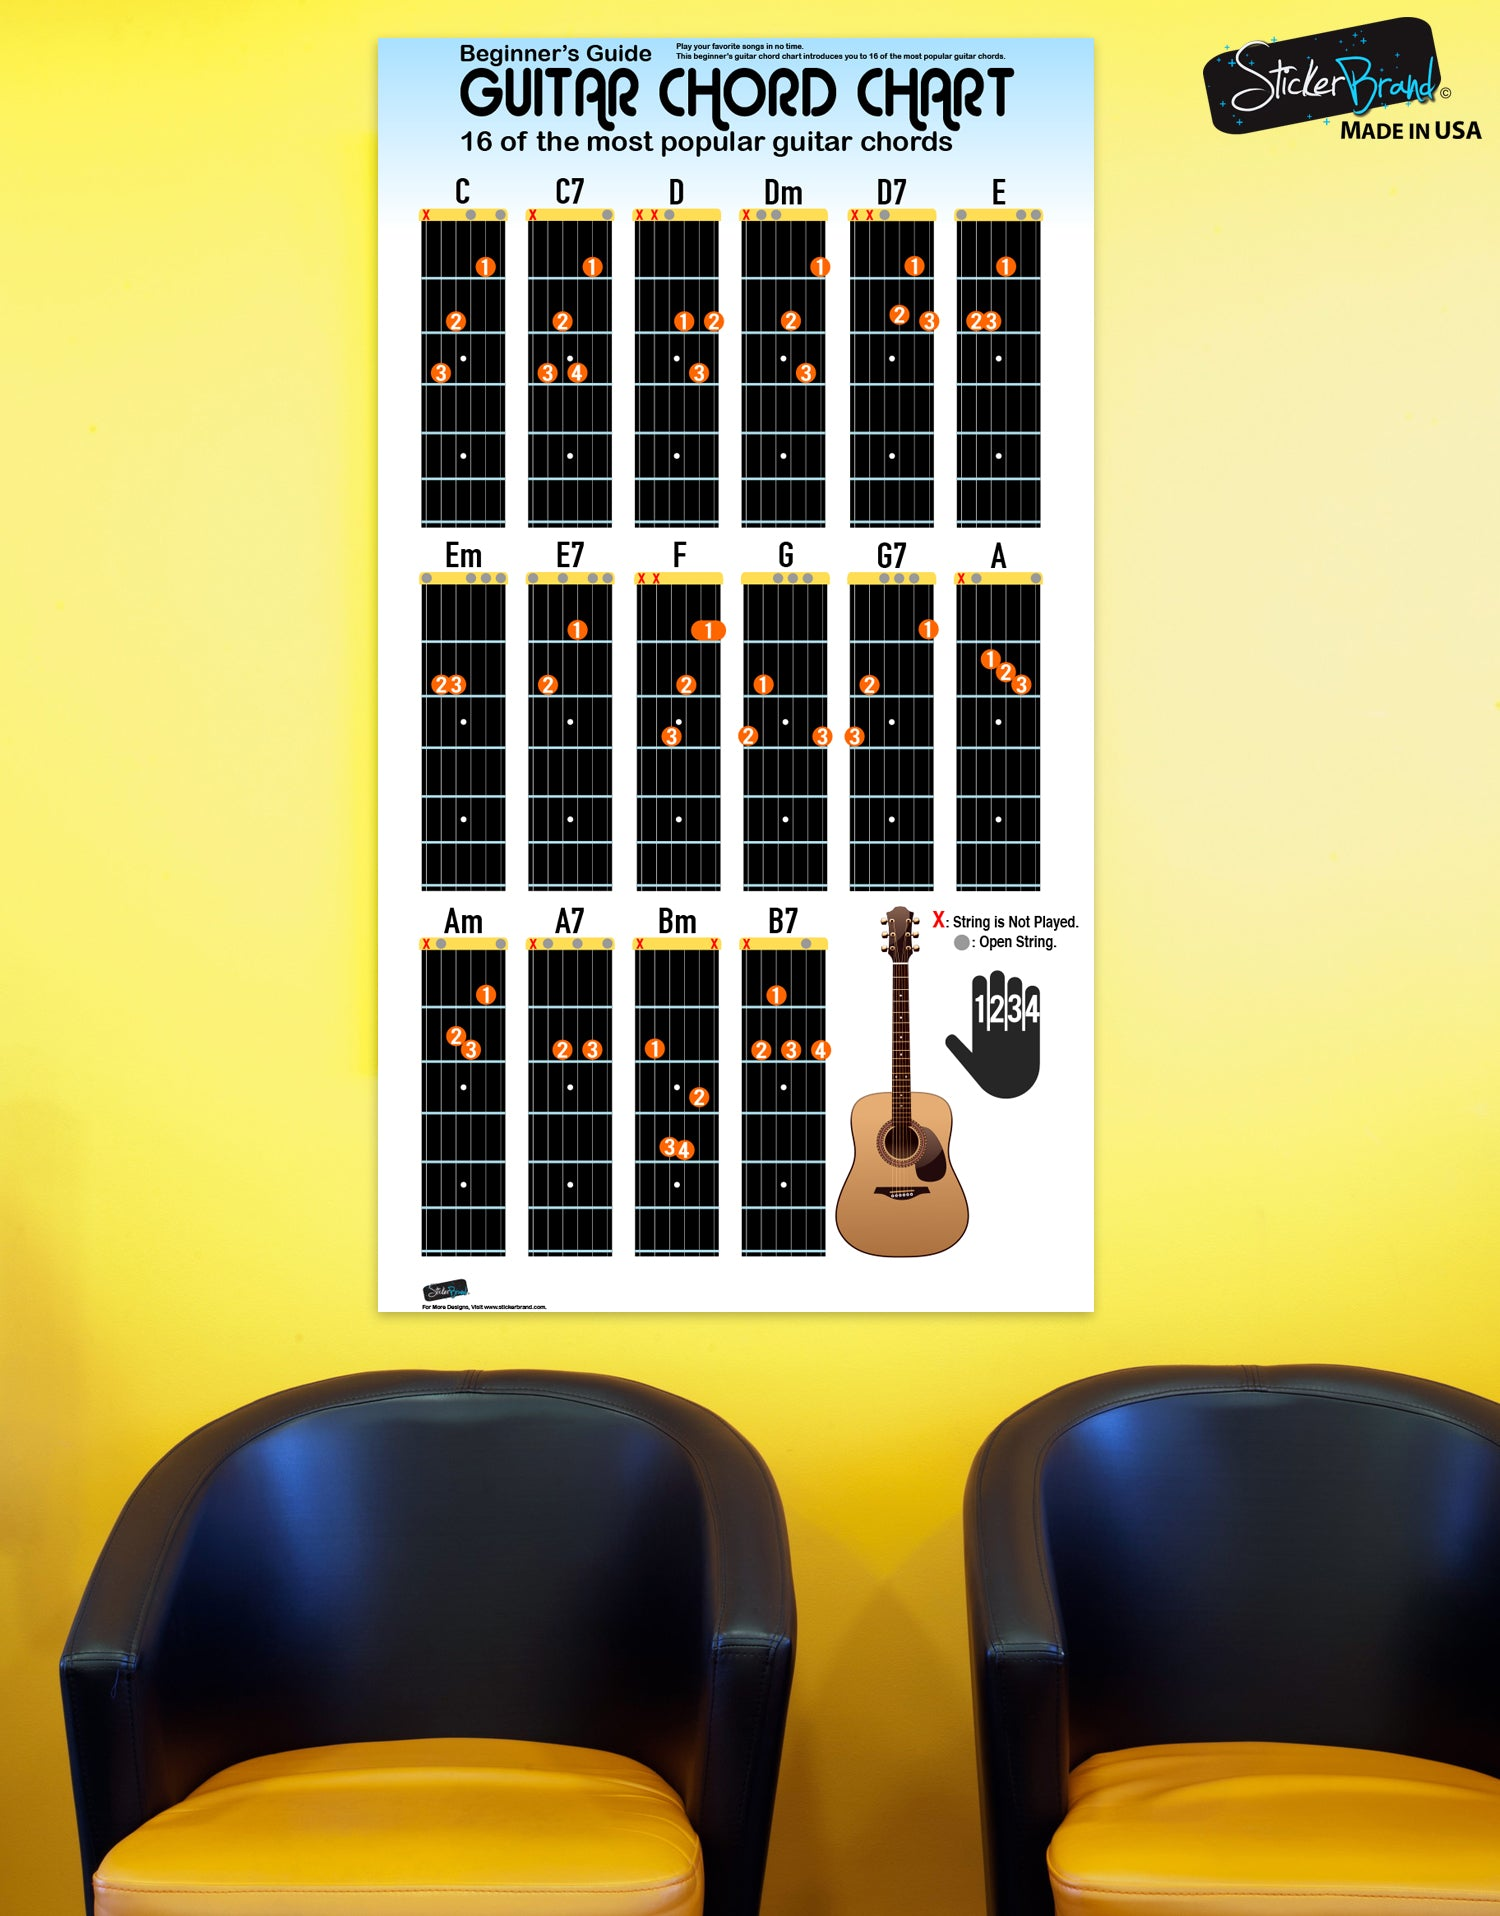 Guitar Chord Chart Poster 16 Popular Chords Guide Perfect For Studen A7 Students And Teachers P1003